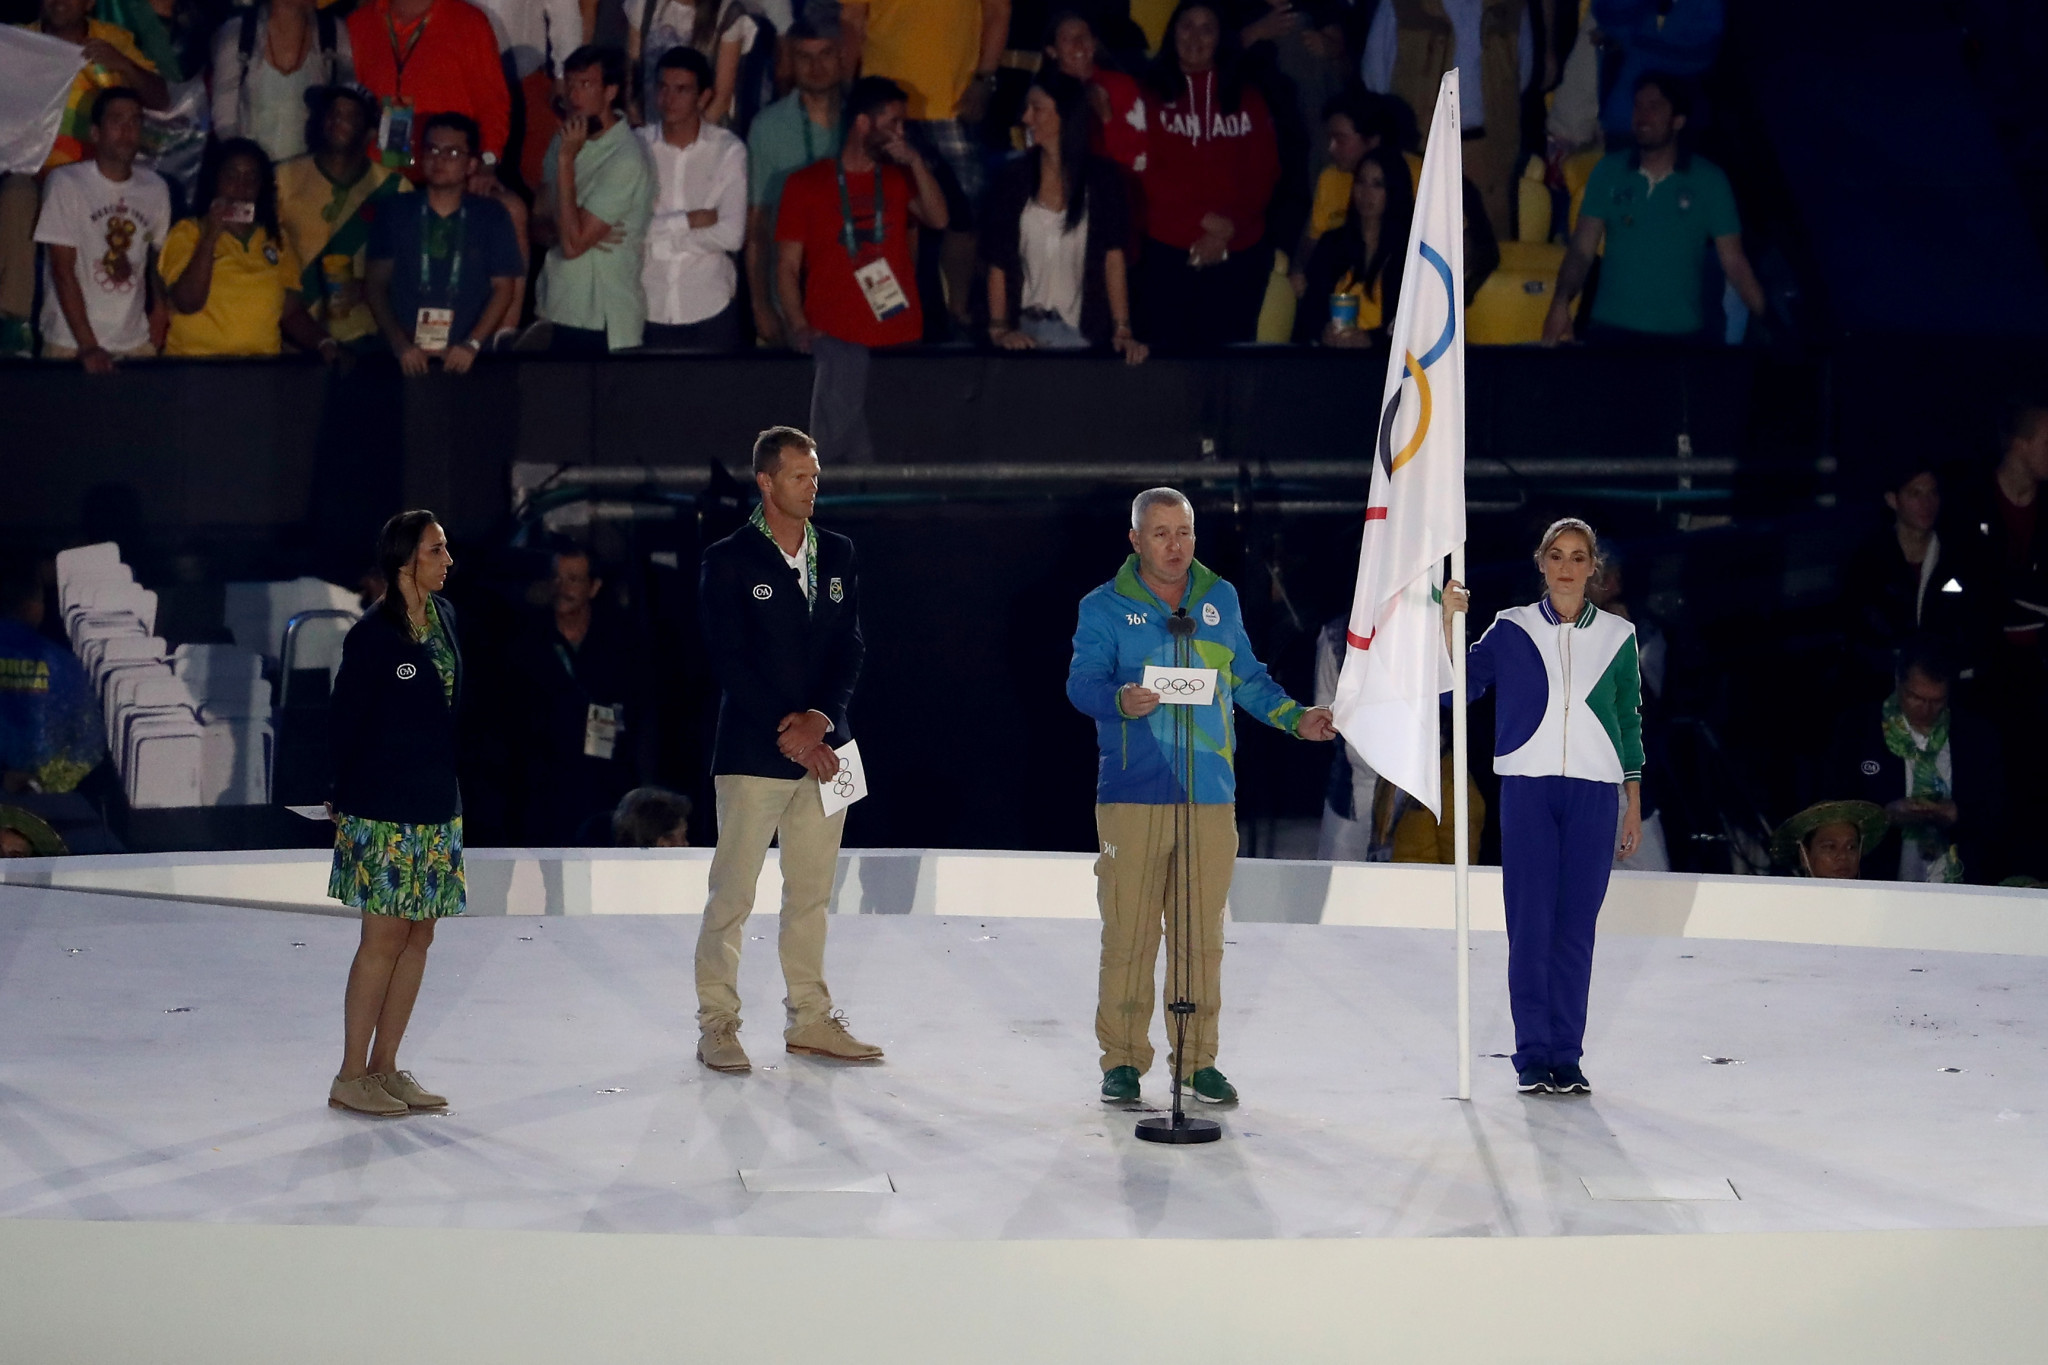 A fundamental change in the Olympic oath is set to be introduced for the Opening Ceremony at Tokyo 2020 on July 23 ©Getty Images